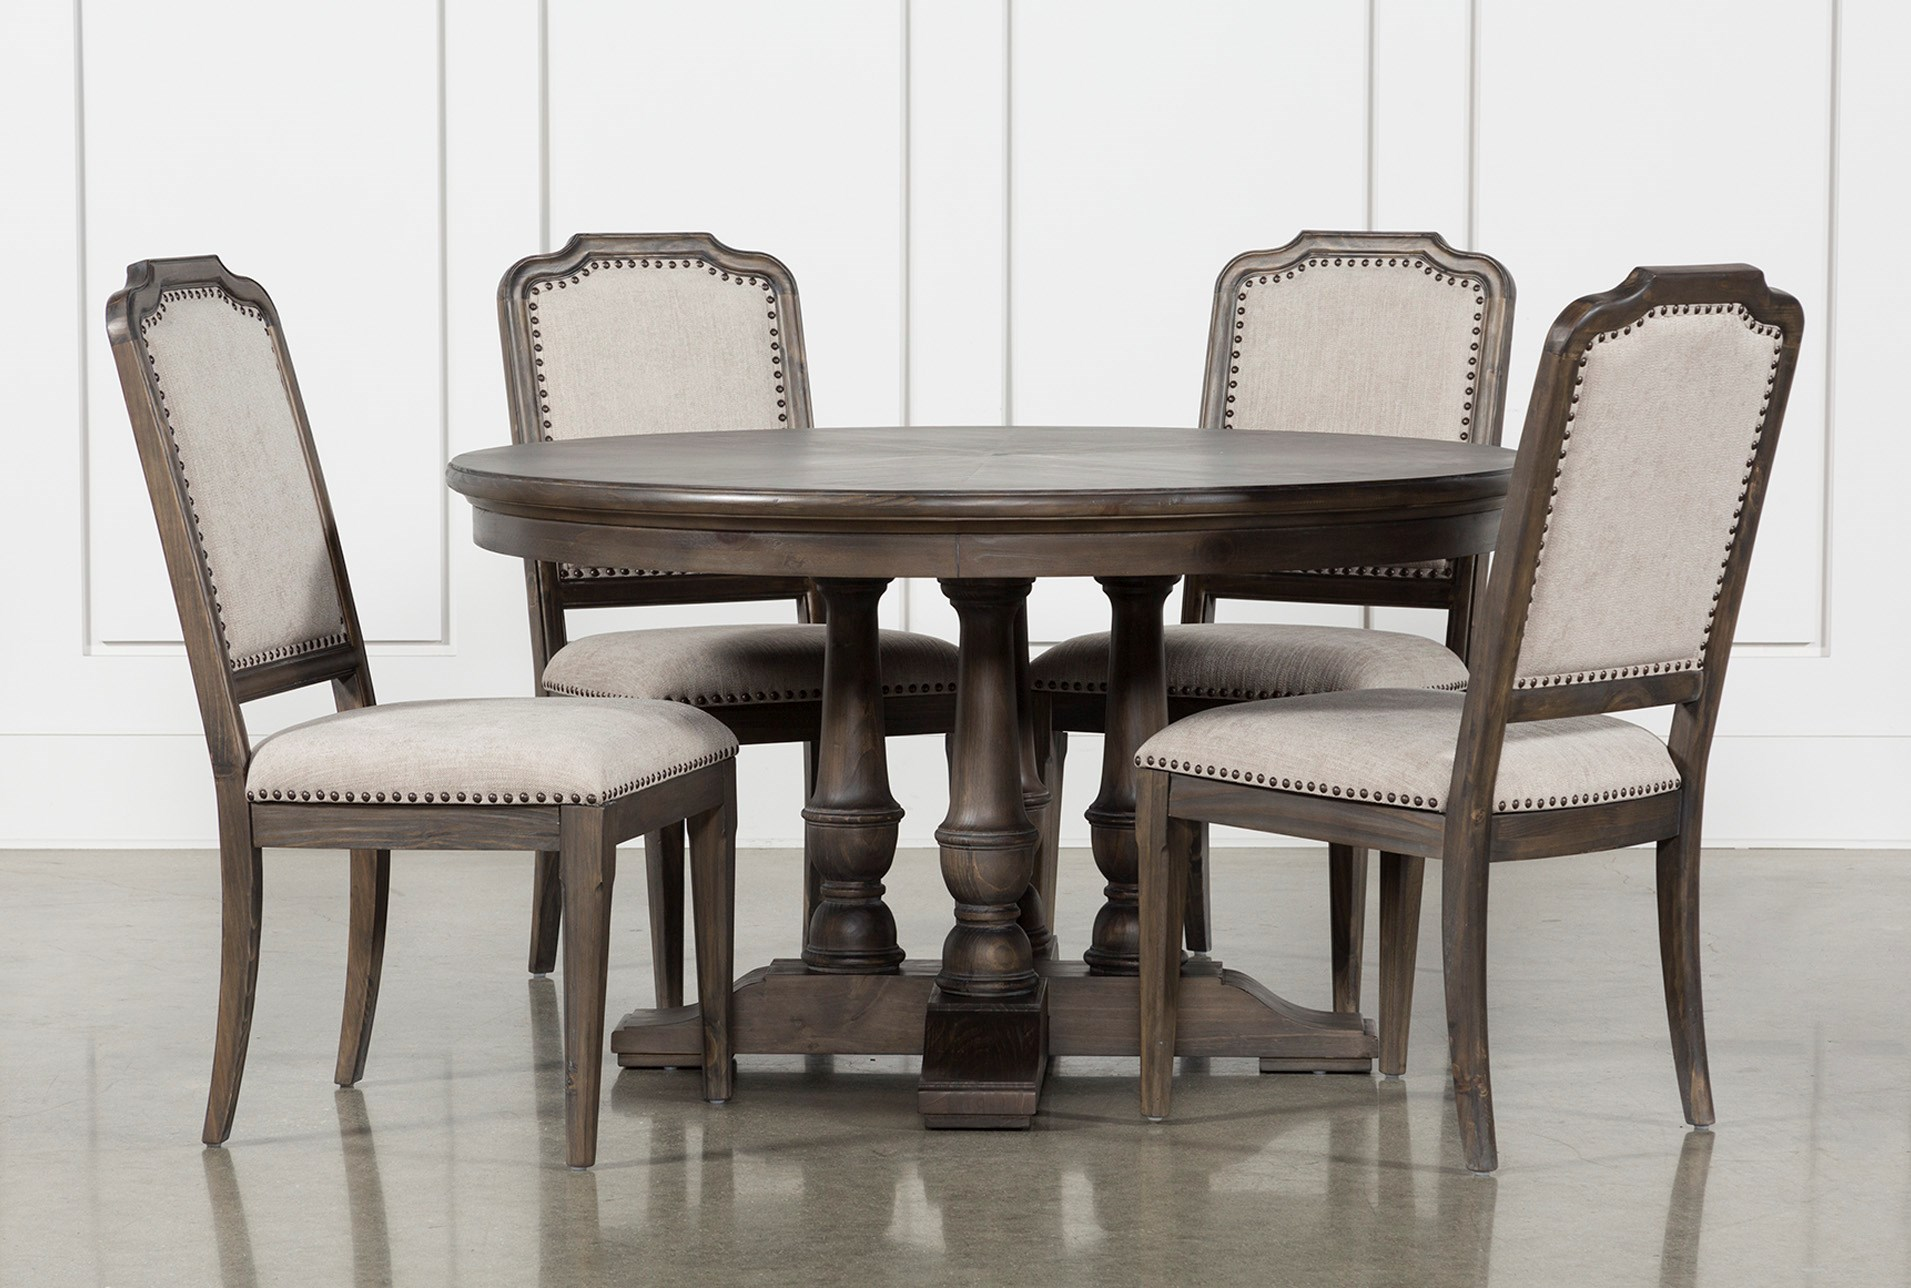 Lau 5 Piece Round Dining Set With Upholstered Chairs Qty 1 Has Been Successfully Added To Your Cart